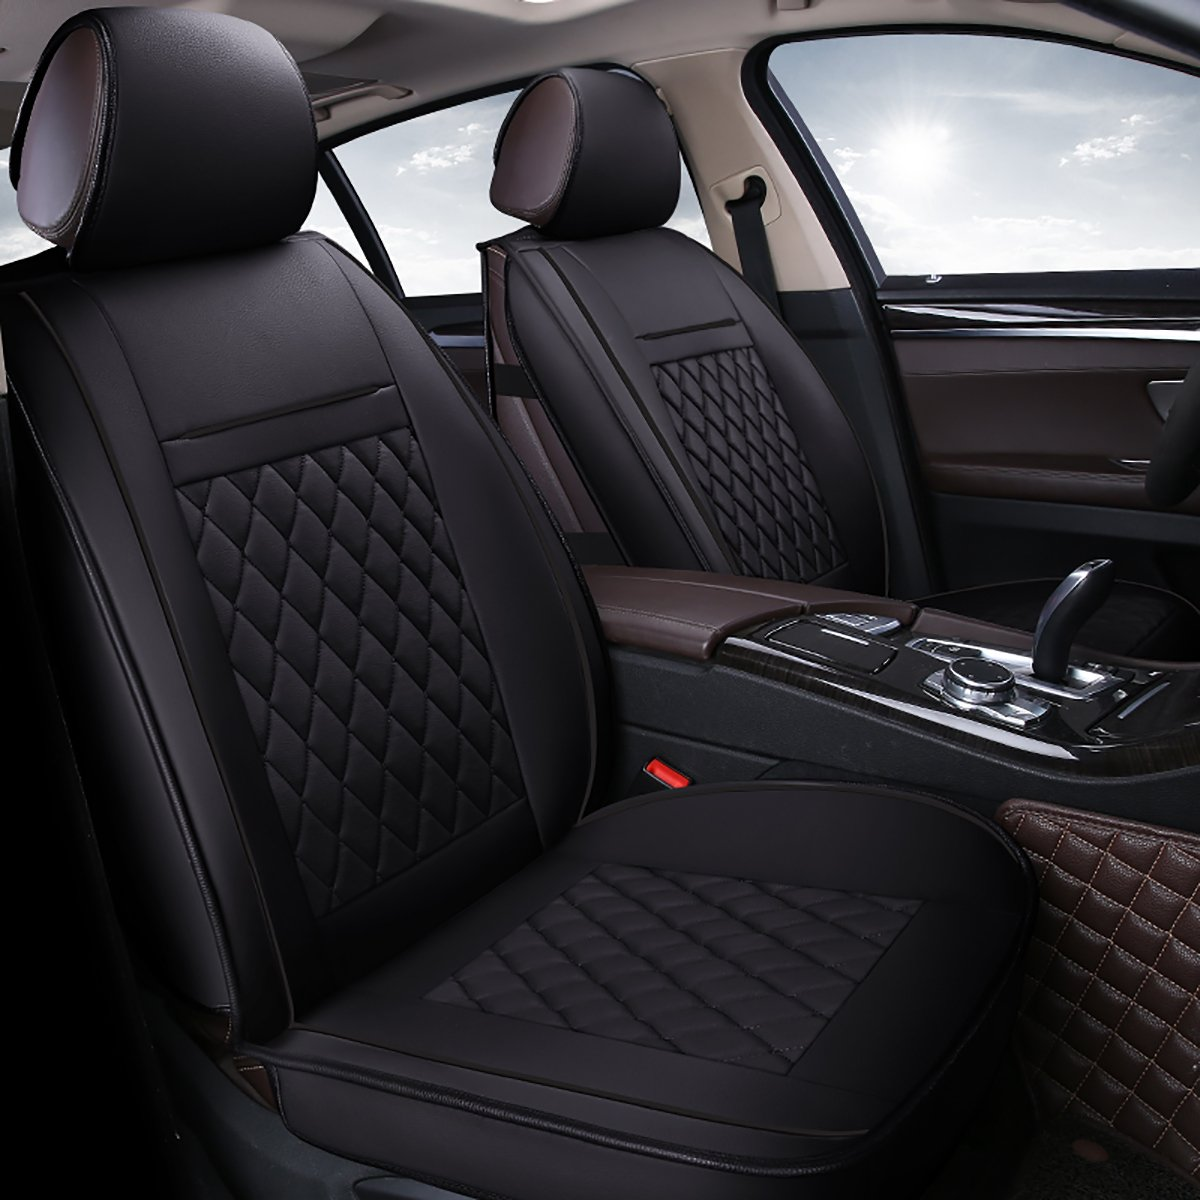 INCH EMPIRE 2 Front Car Seat Cover Waterproof Leatherette Cushions Universal Fit Simple Diamond-Line Style(2 Front Black Grid Trim)